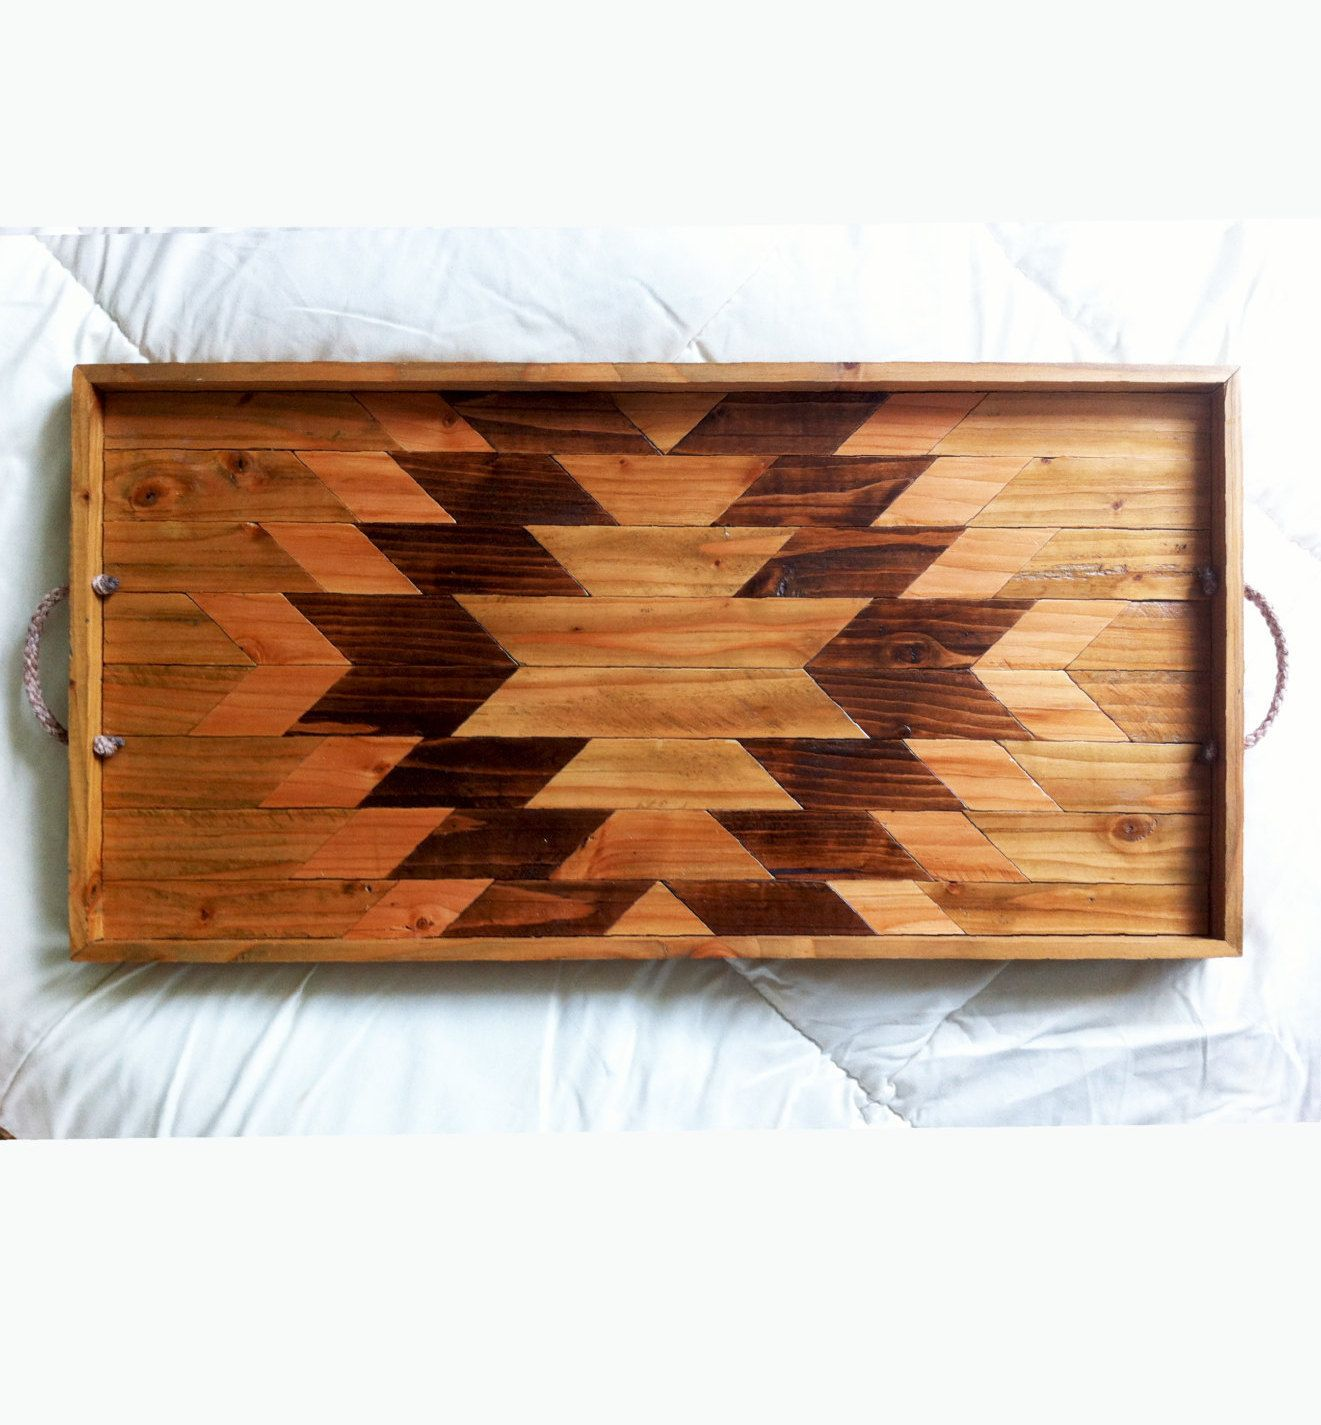 Wood Serving Storage Tray Repurposed And Lined With Vintage Wooden Yardsticks Serving Storage Decorative Tray Tray